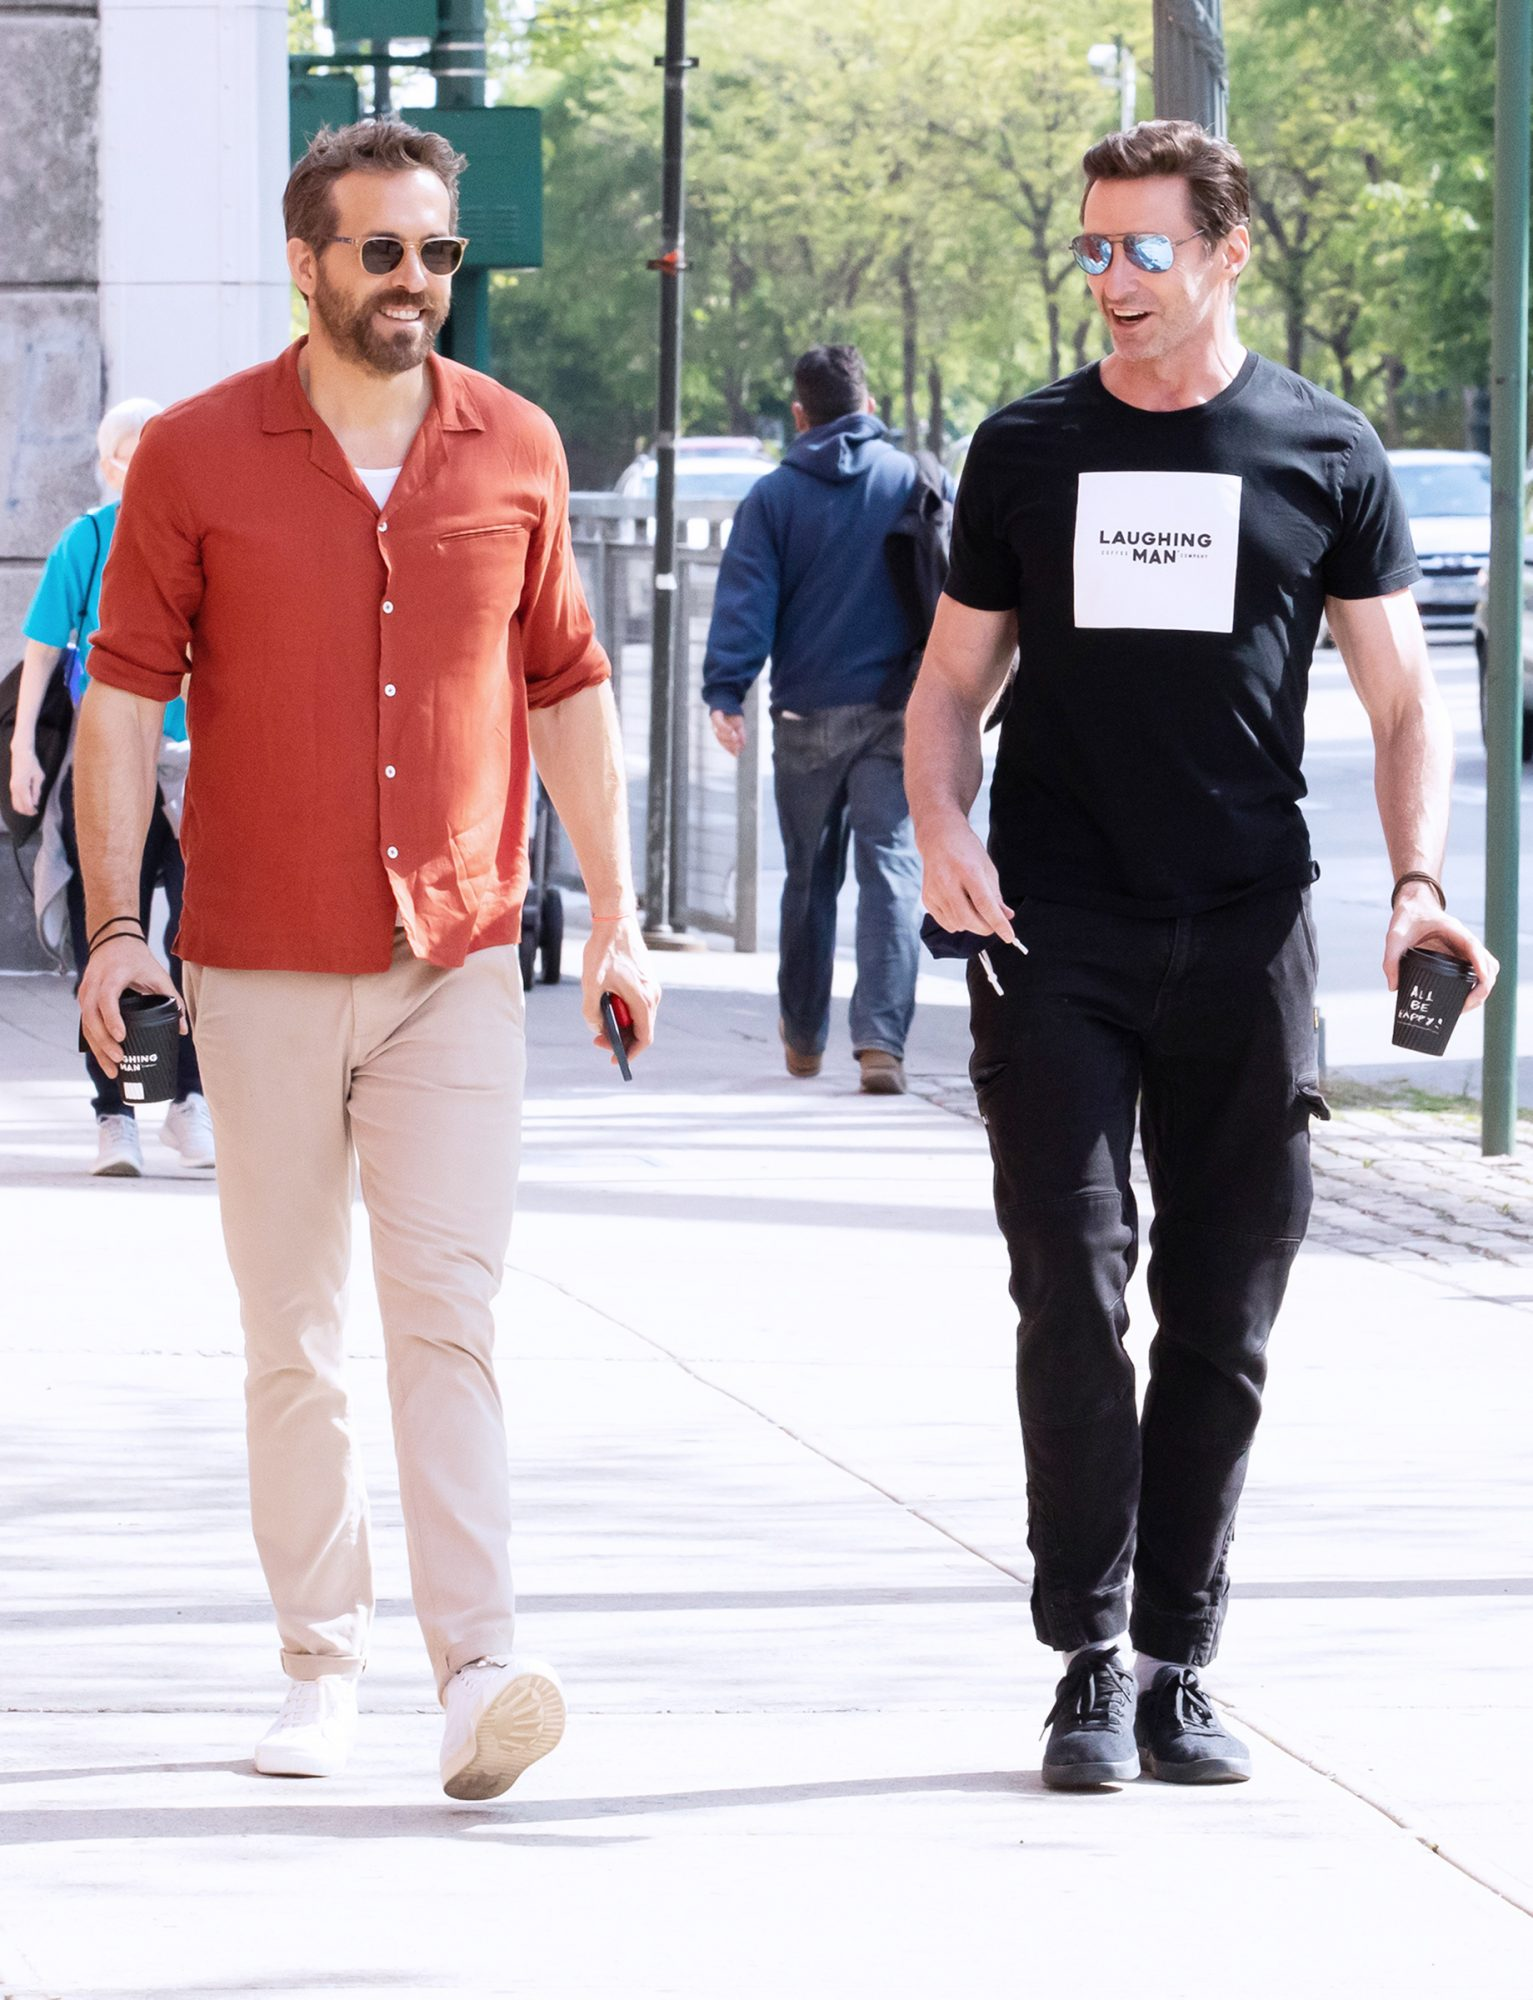 Hugh Jackman and Ryan Reynolds have lunch together in NYC,